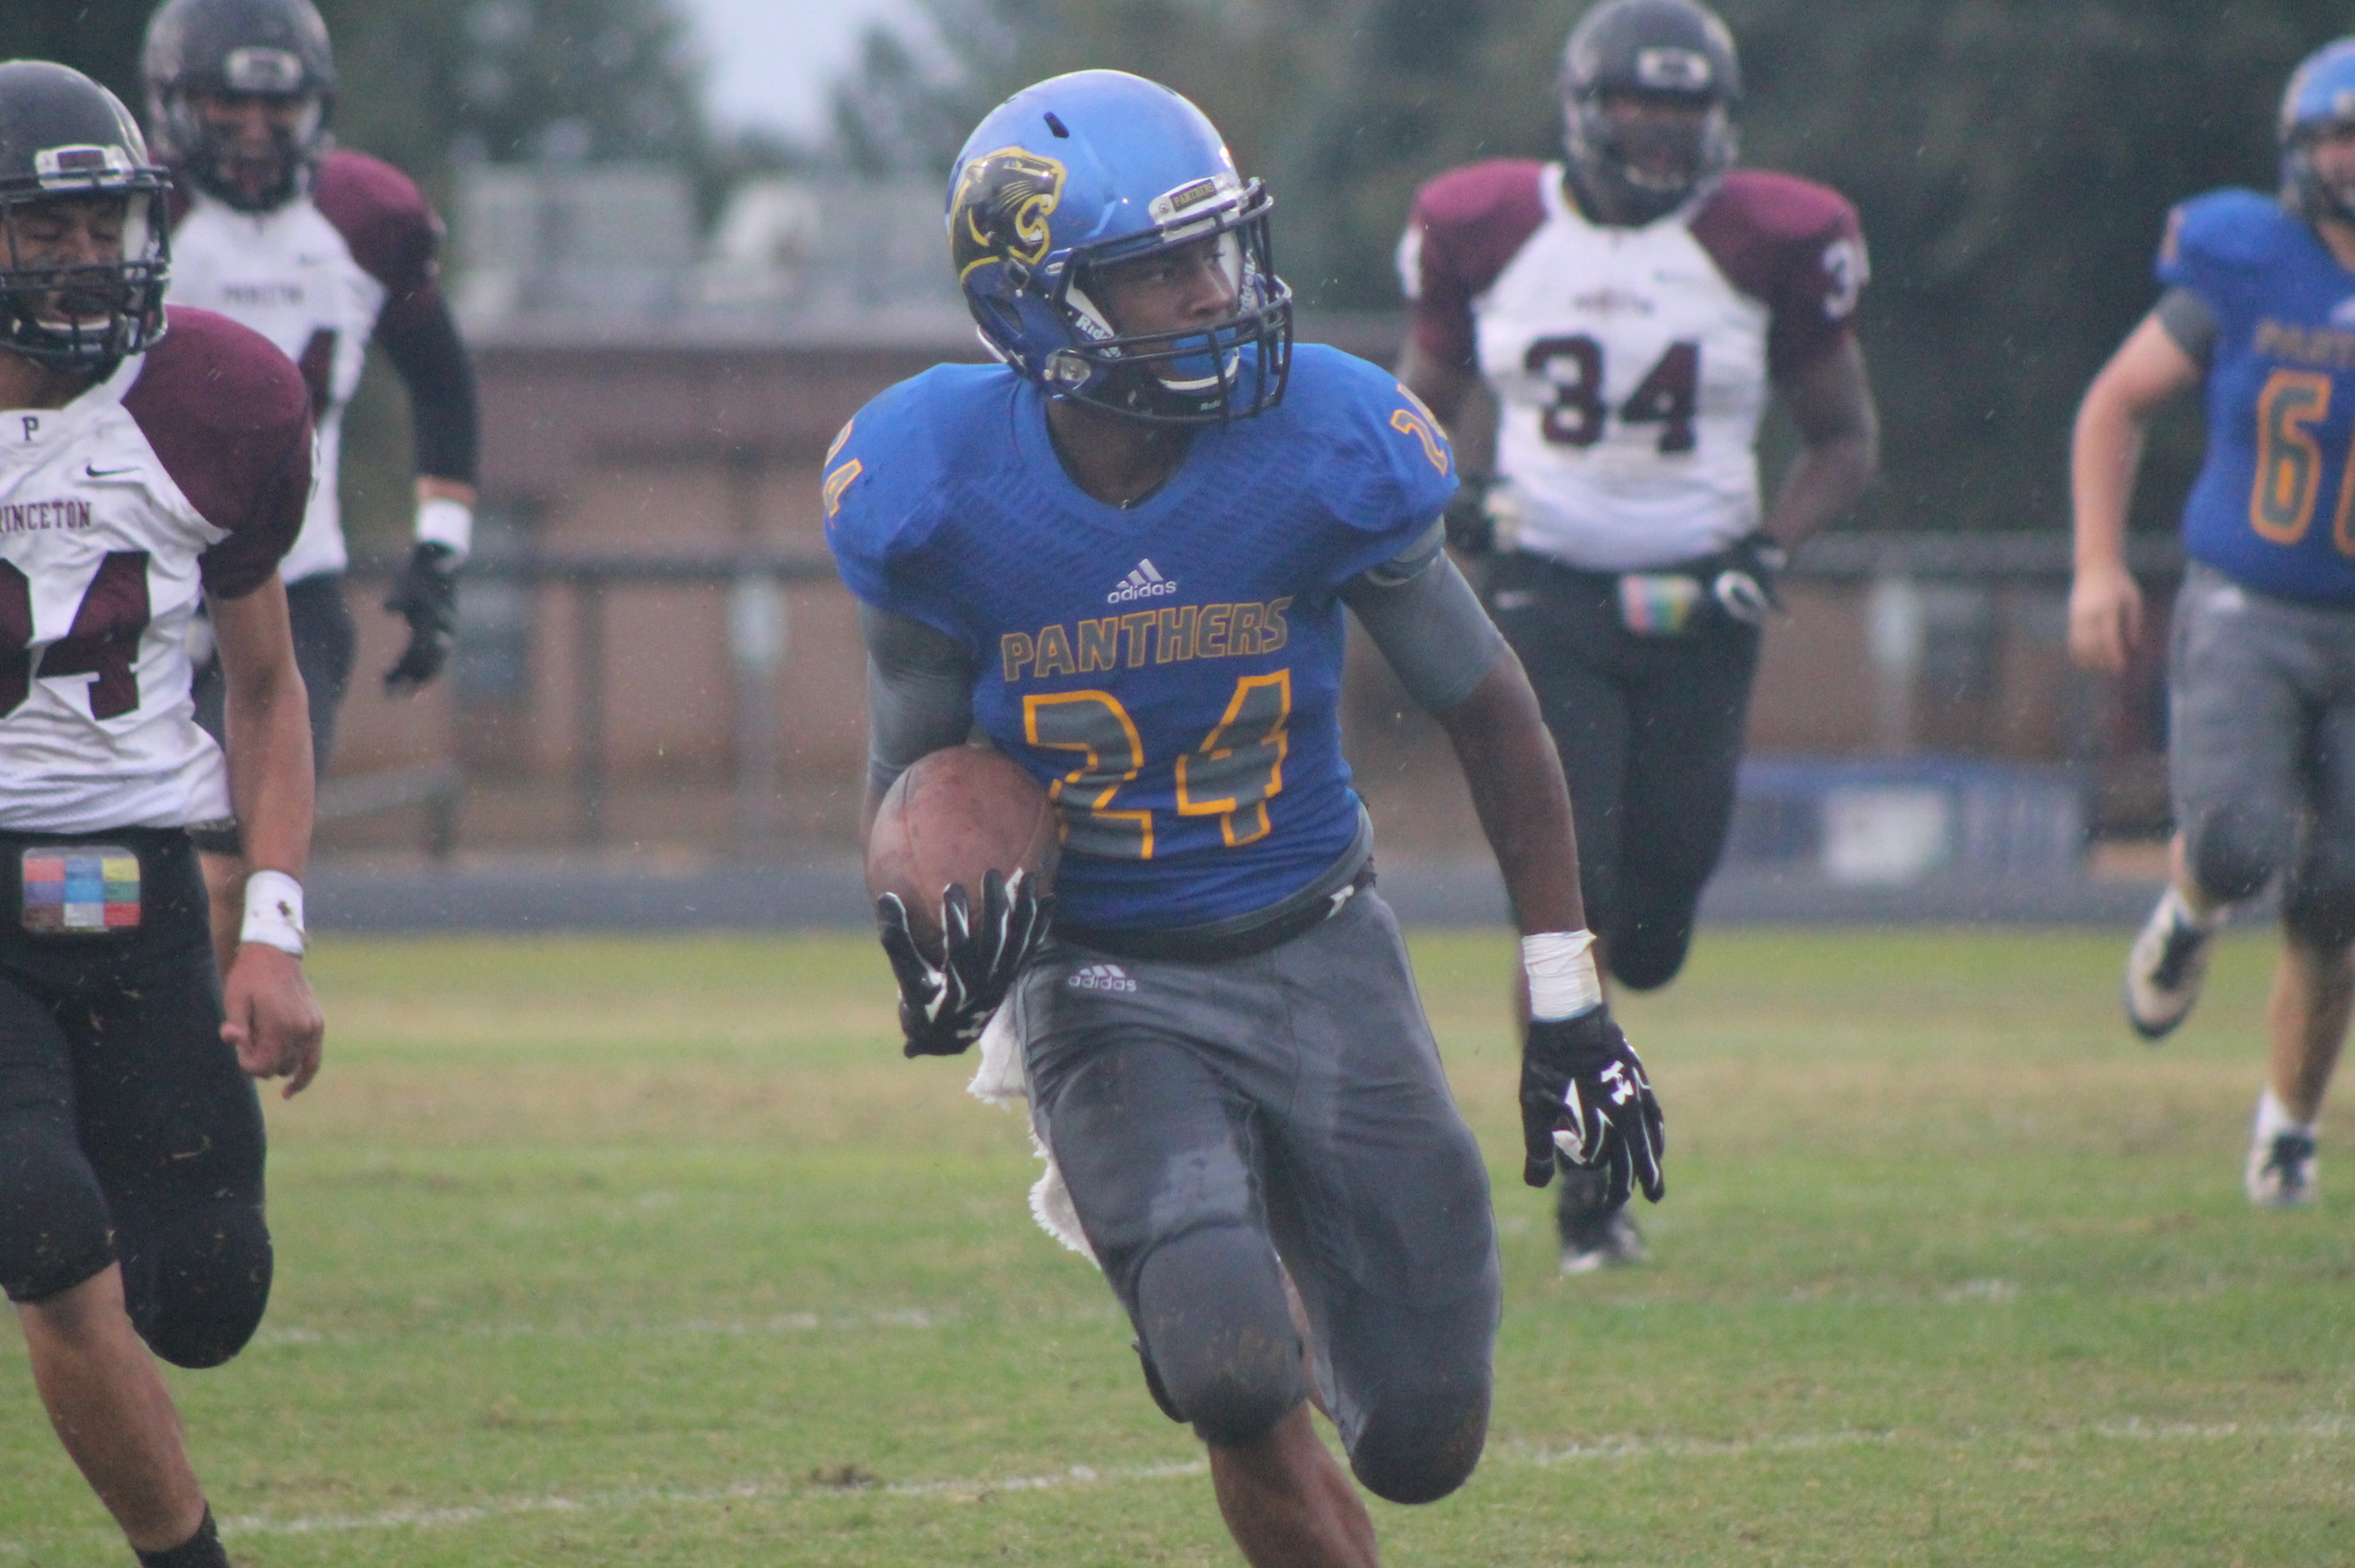 (Photo by Maddy Routon) Javon Franklin with a touchdown run against Princeton Friday night.